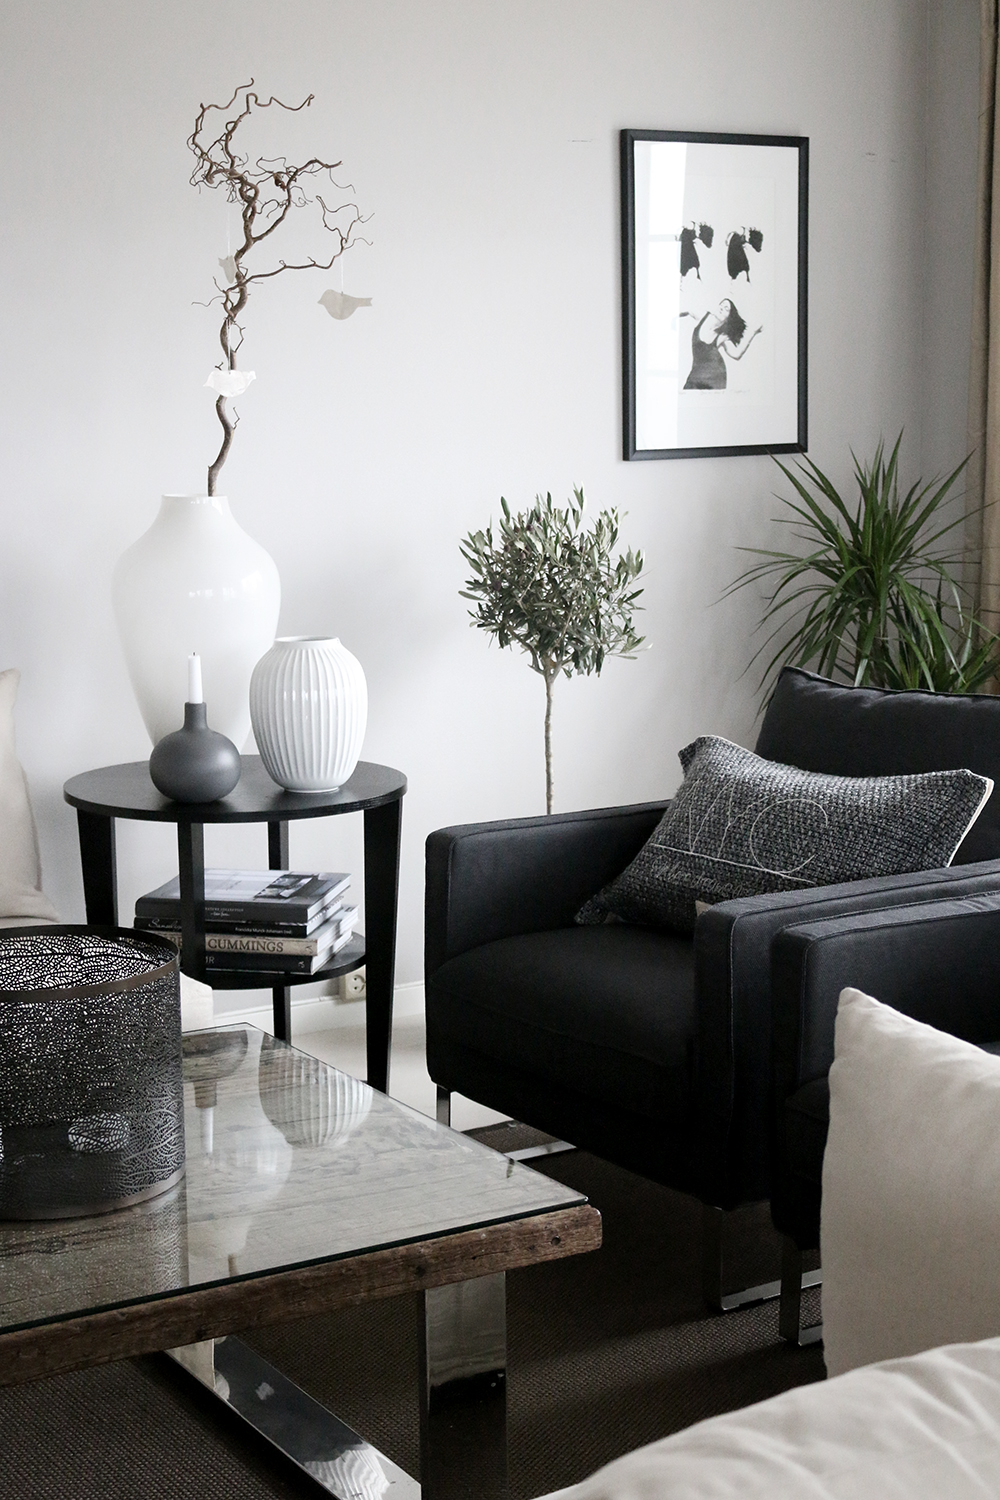 Livingroom-black-white-grey-Anette-Willemine-Solheim-2